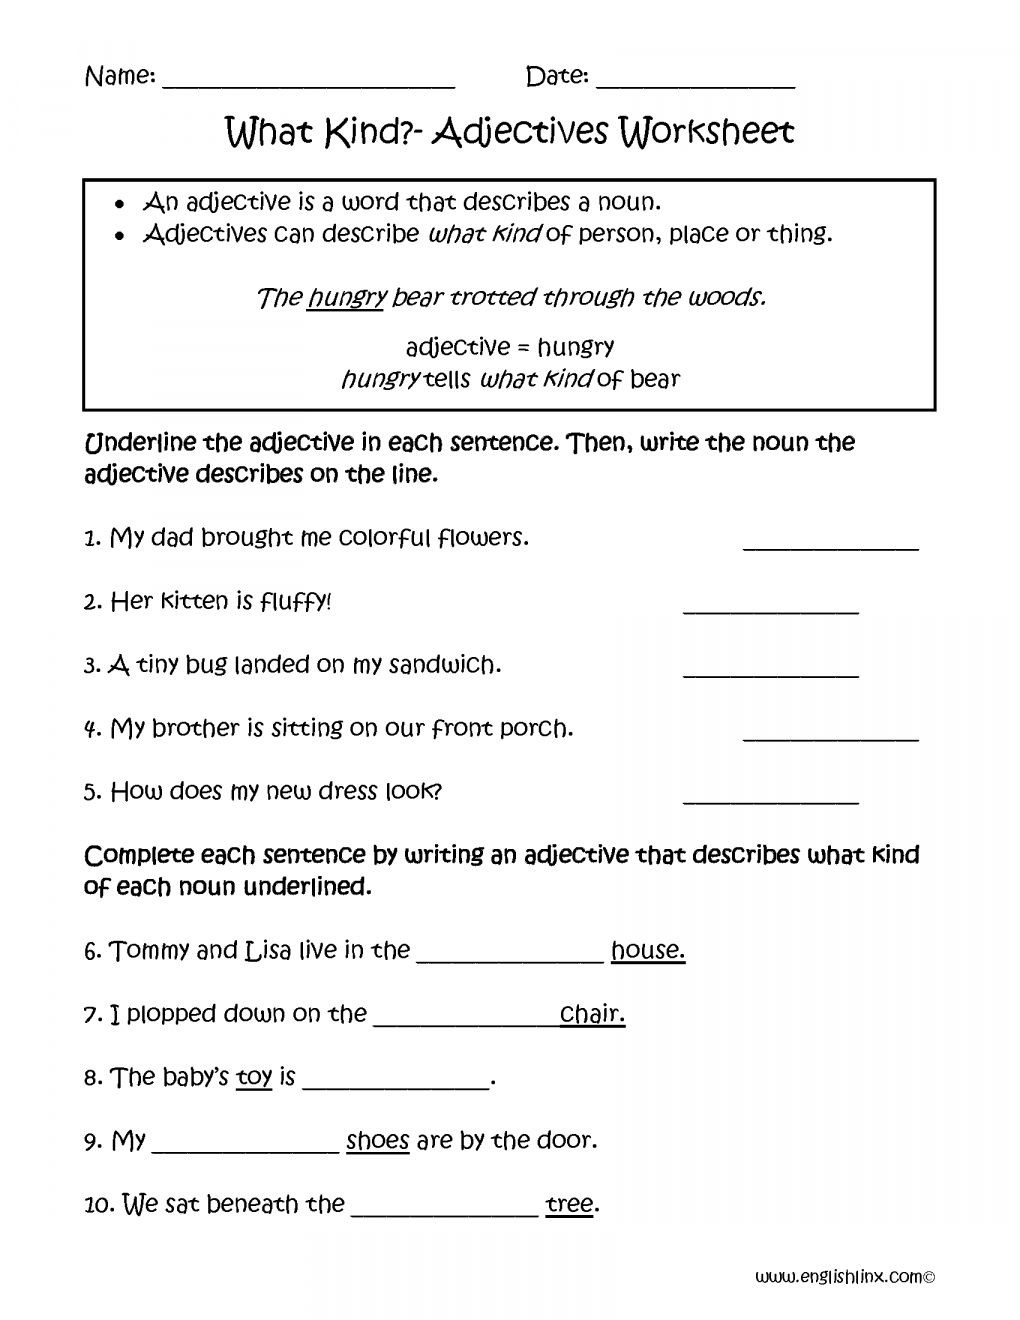 Adjectives Worksheets for Grade 2 Adjectives and Articles Worksheet 4th Grade and Adjectives